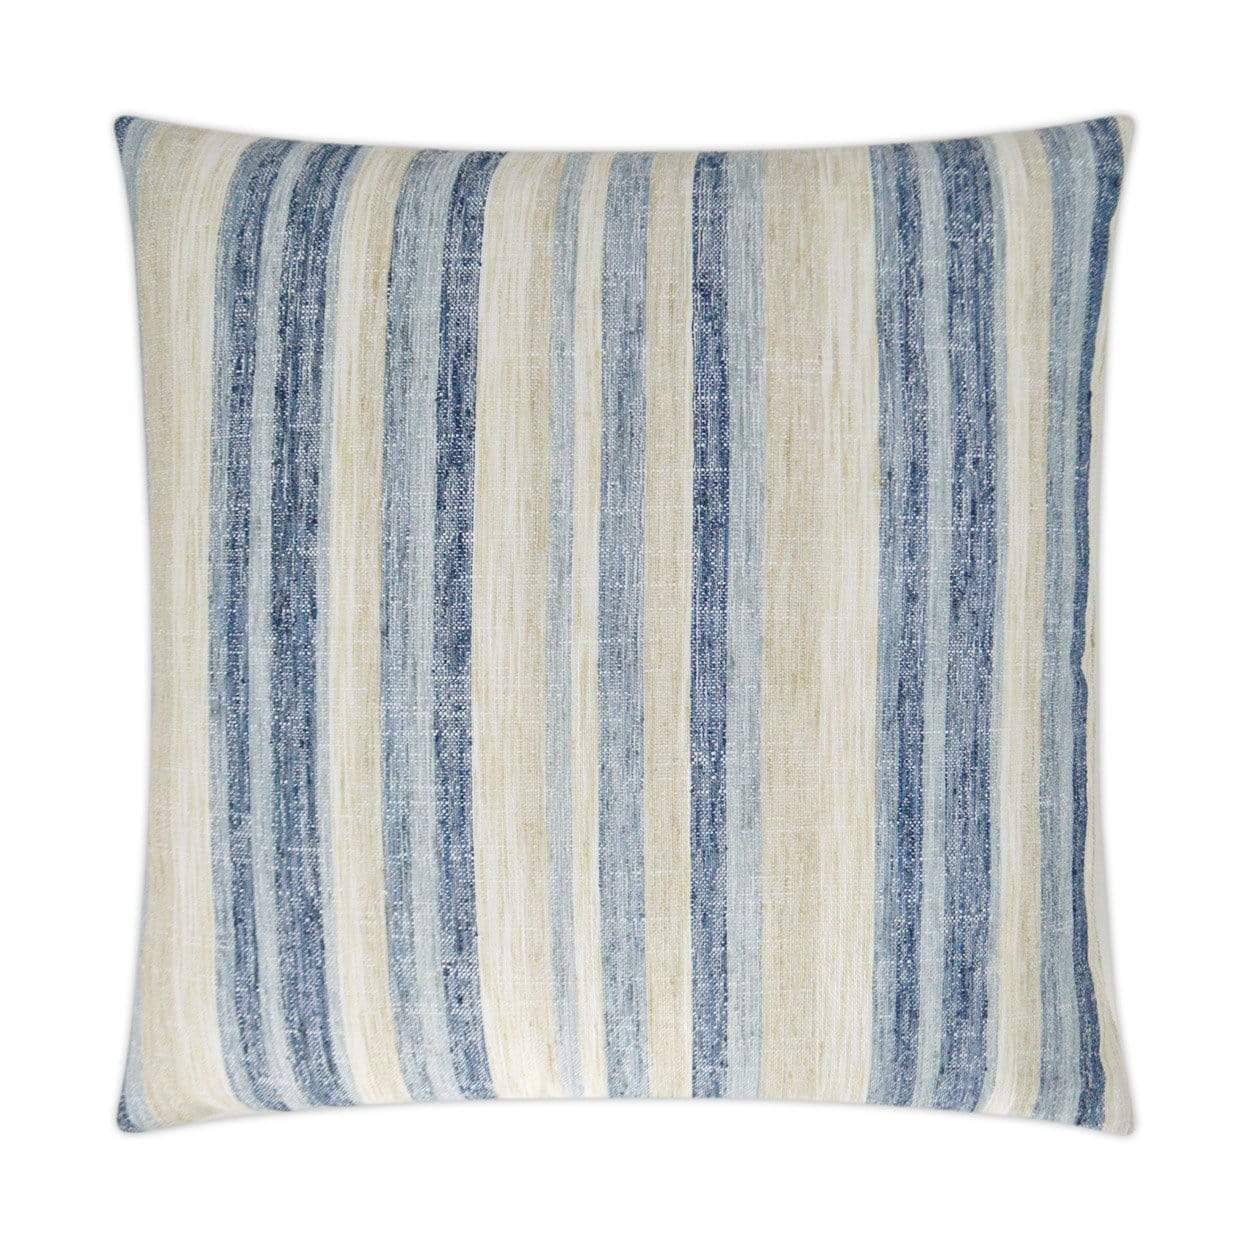 D.V. Kap D.V. Kap Faded Stripe Pillow - Available in 3 Colors Grey 3237-G